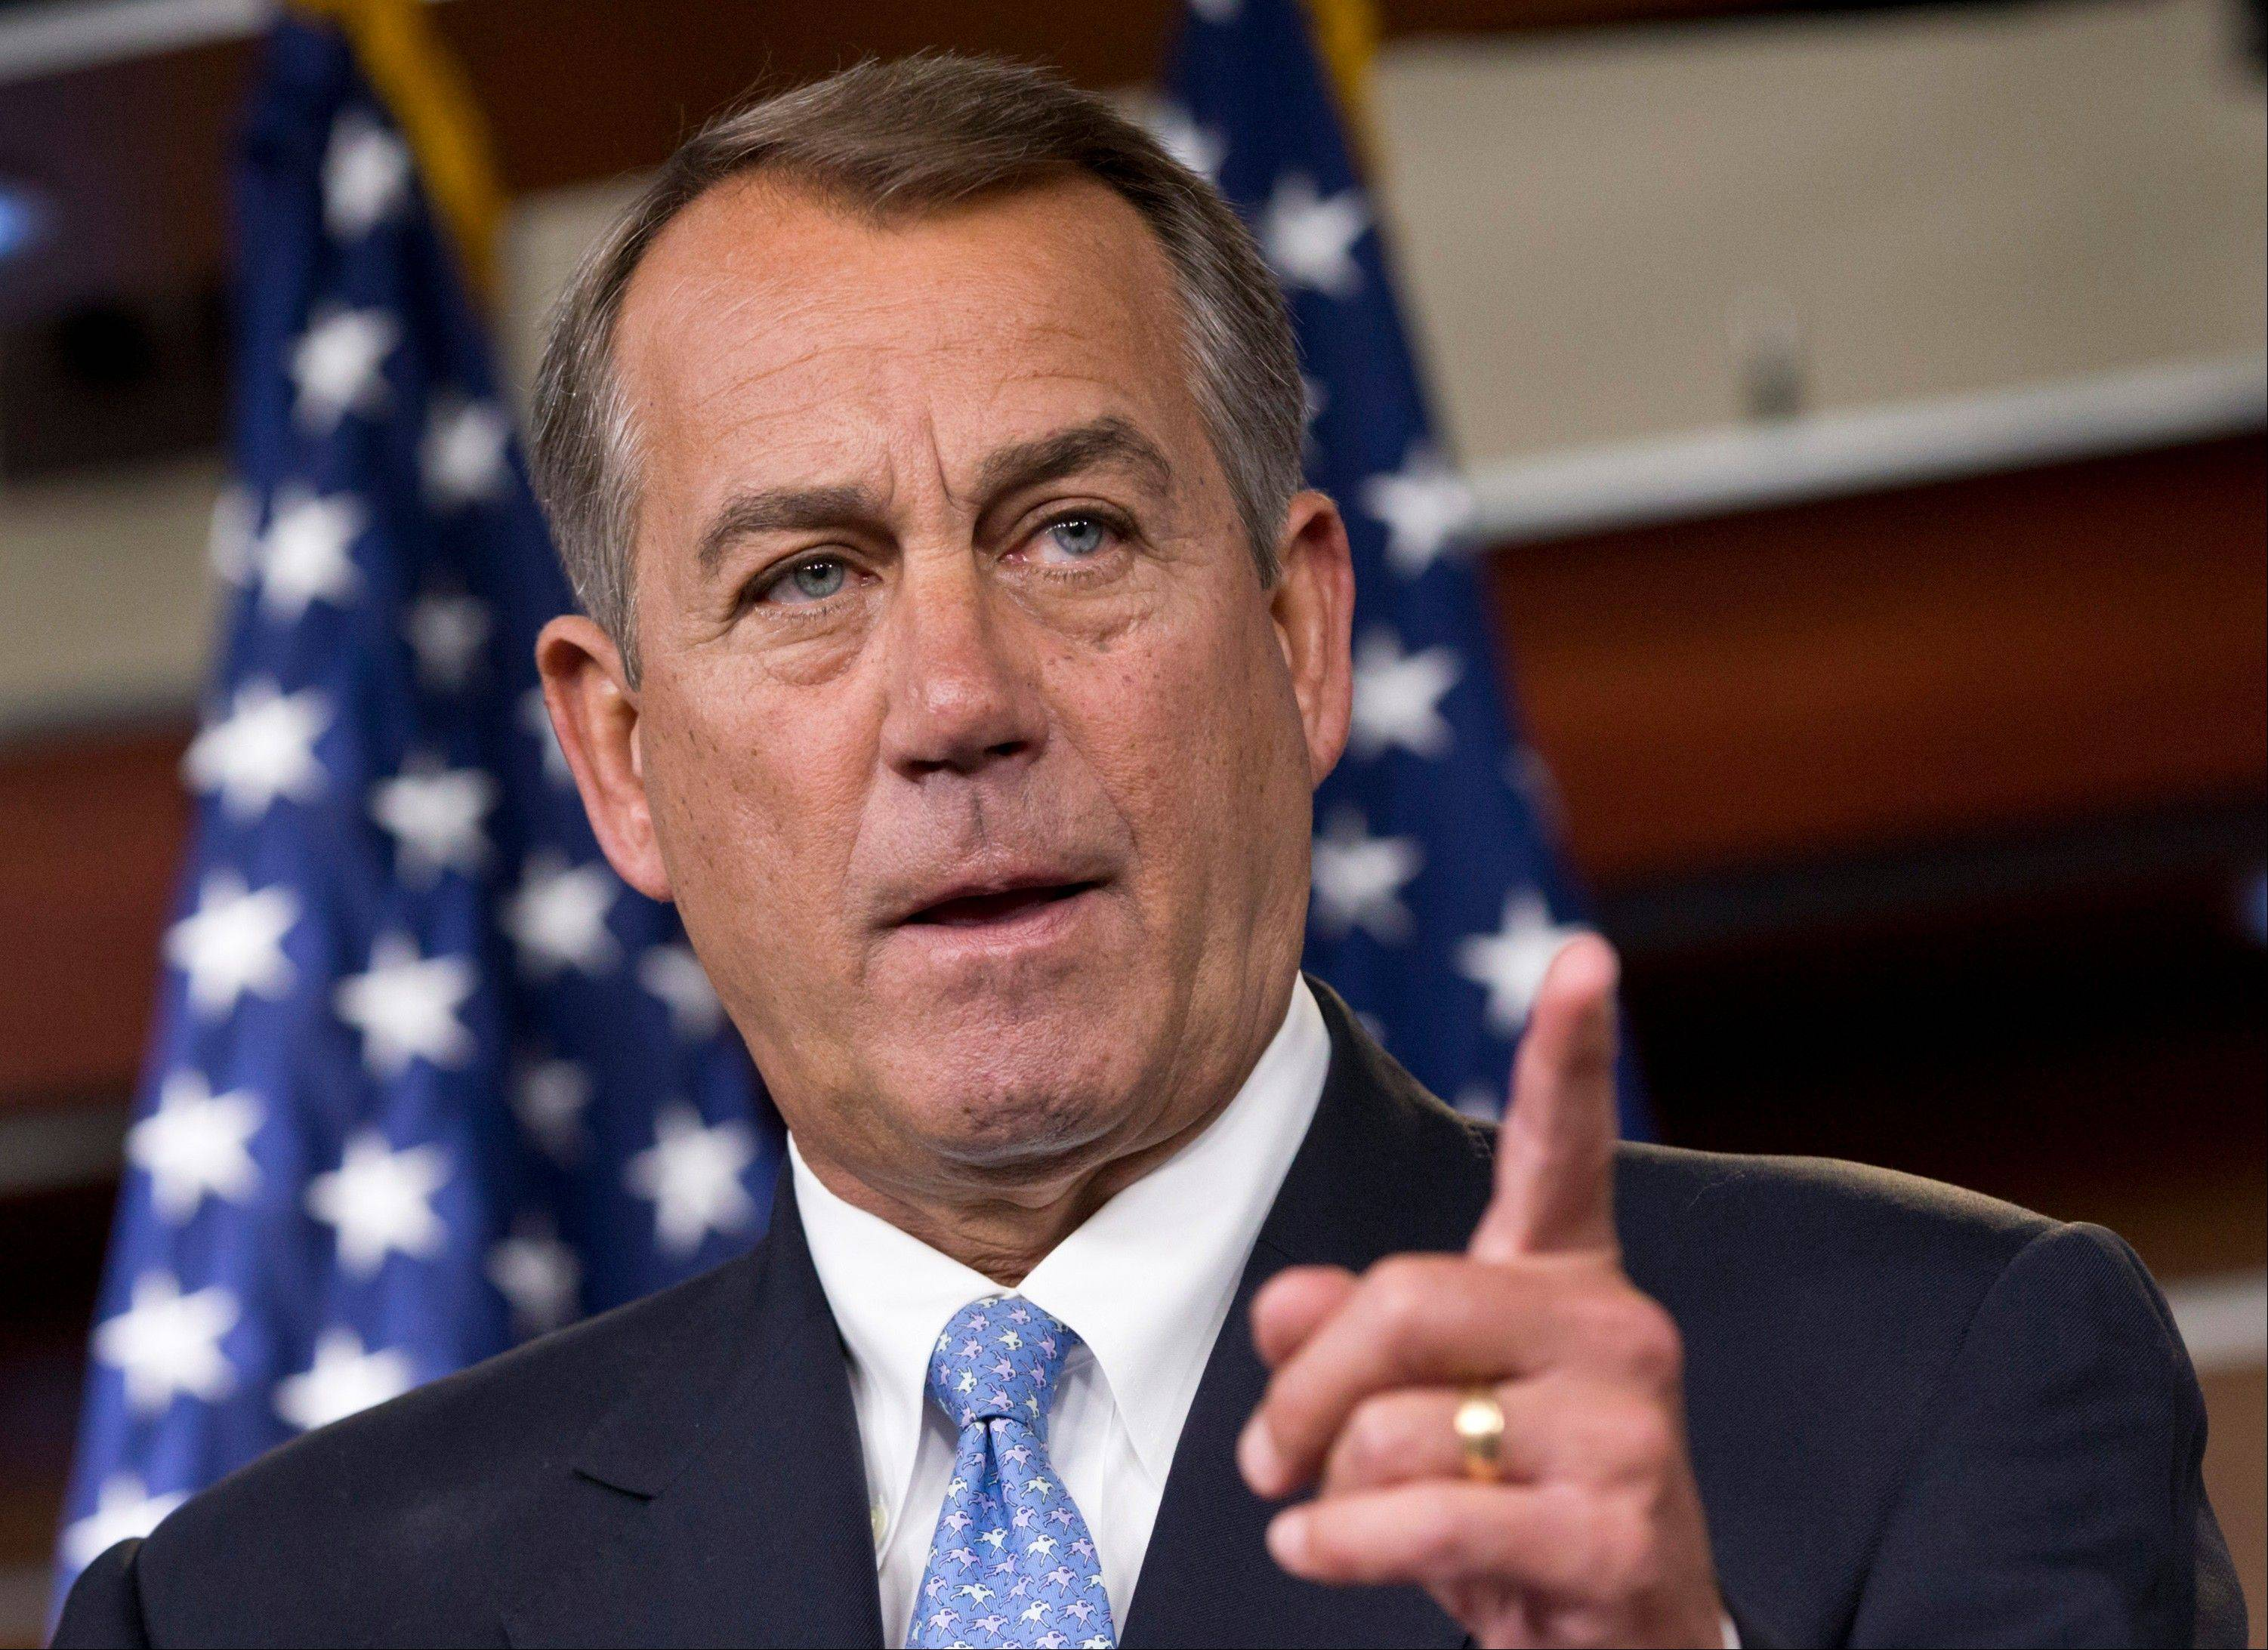 The GOP-led House of Representatives, led by Speaker of the House John Boehner, seen here, has tried 38 times to eliminate, defund or scale back the administration�s health care reform law since Republicans took control of the chamber in January 2011.